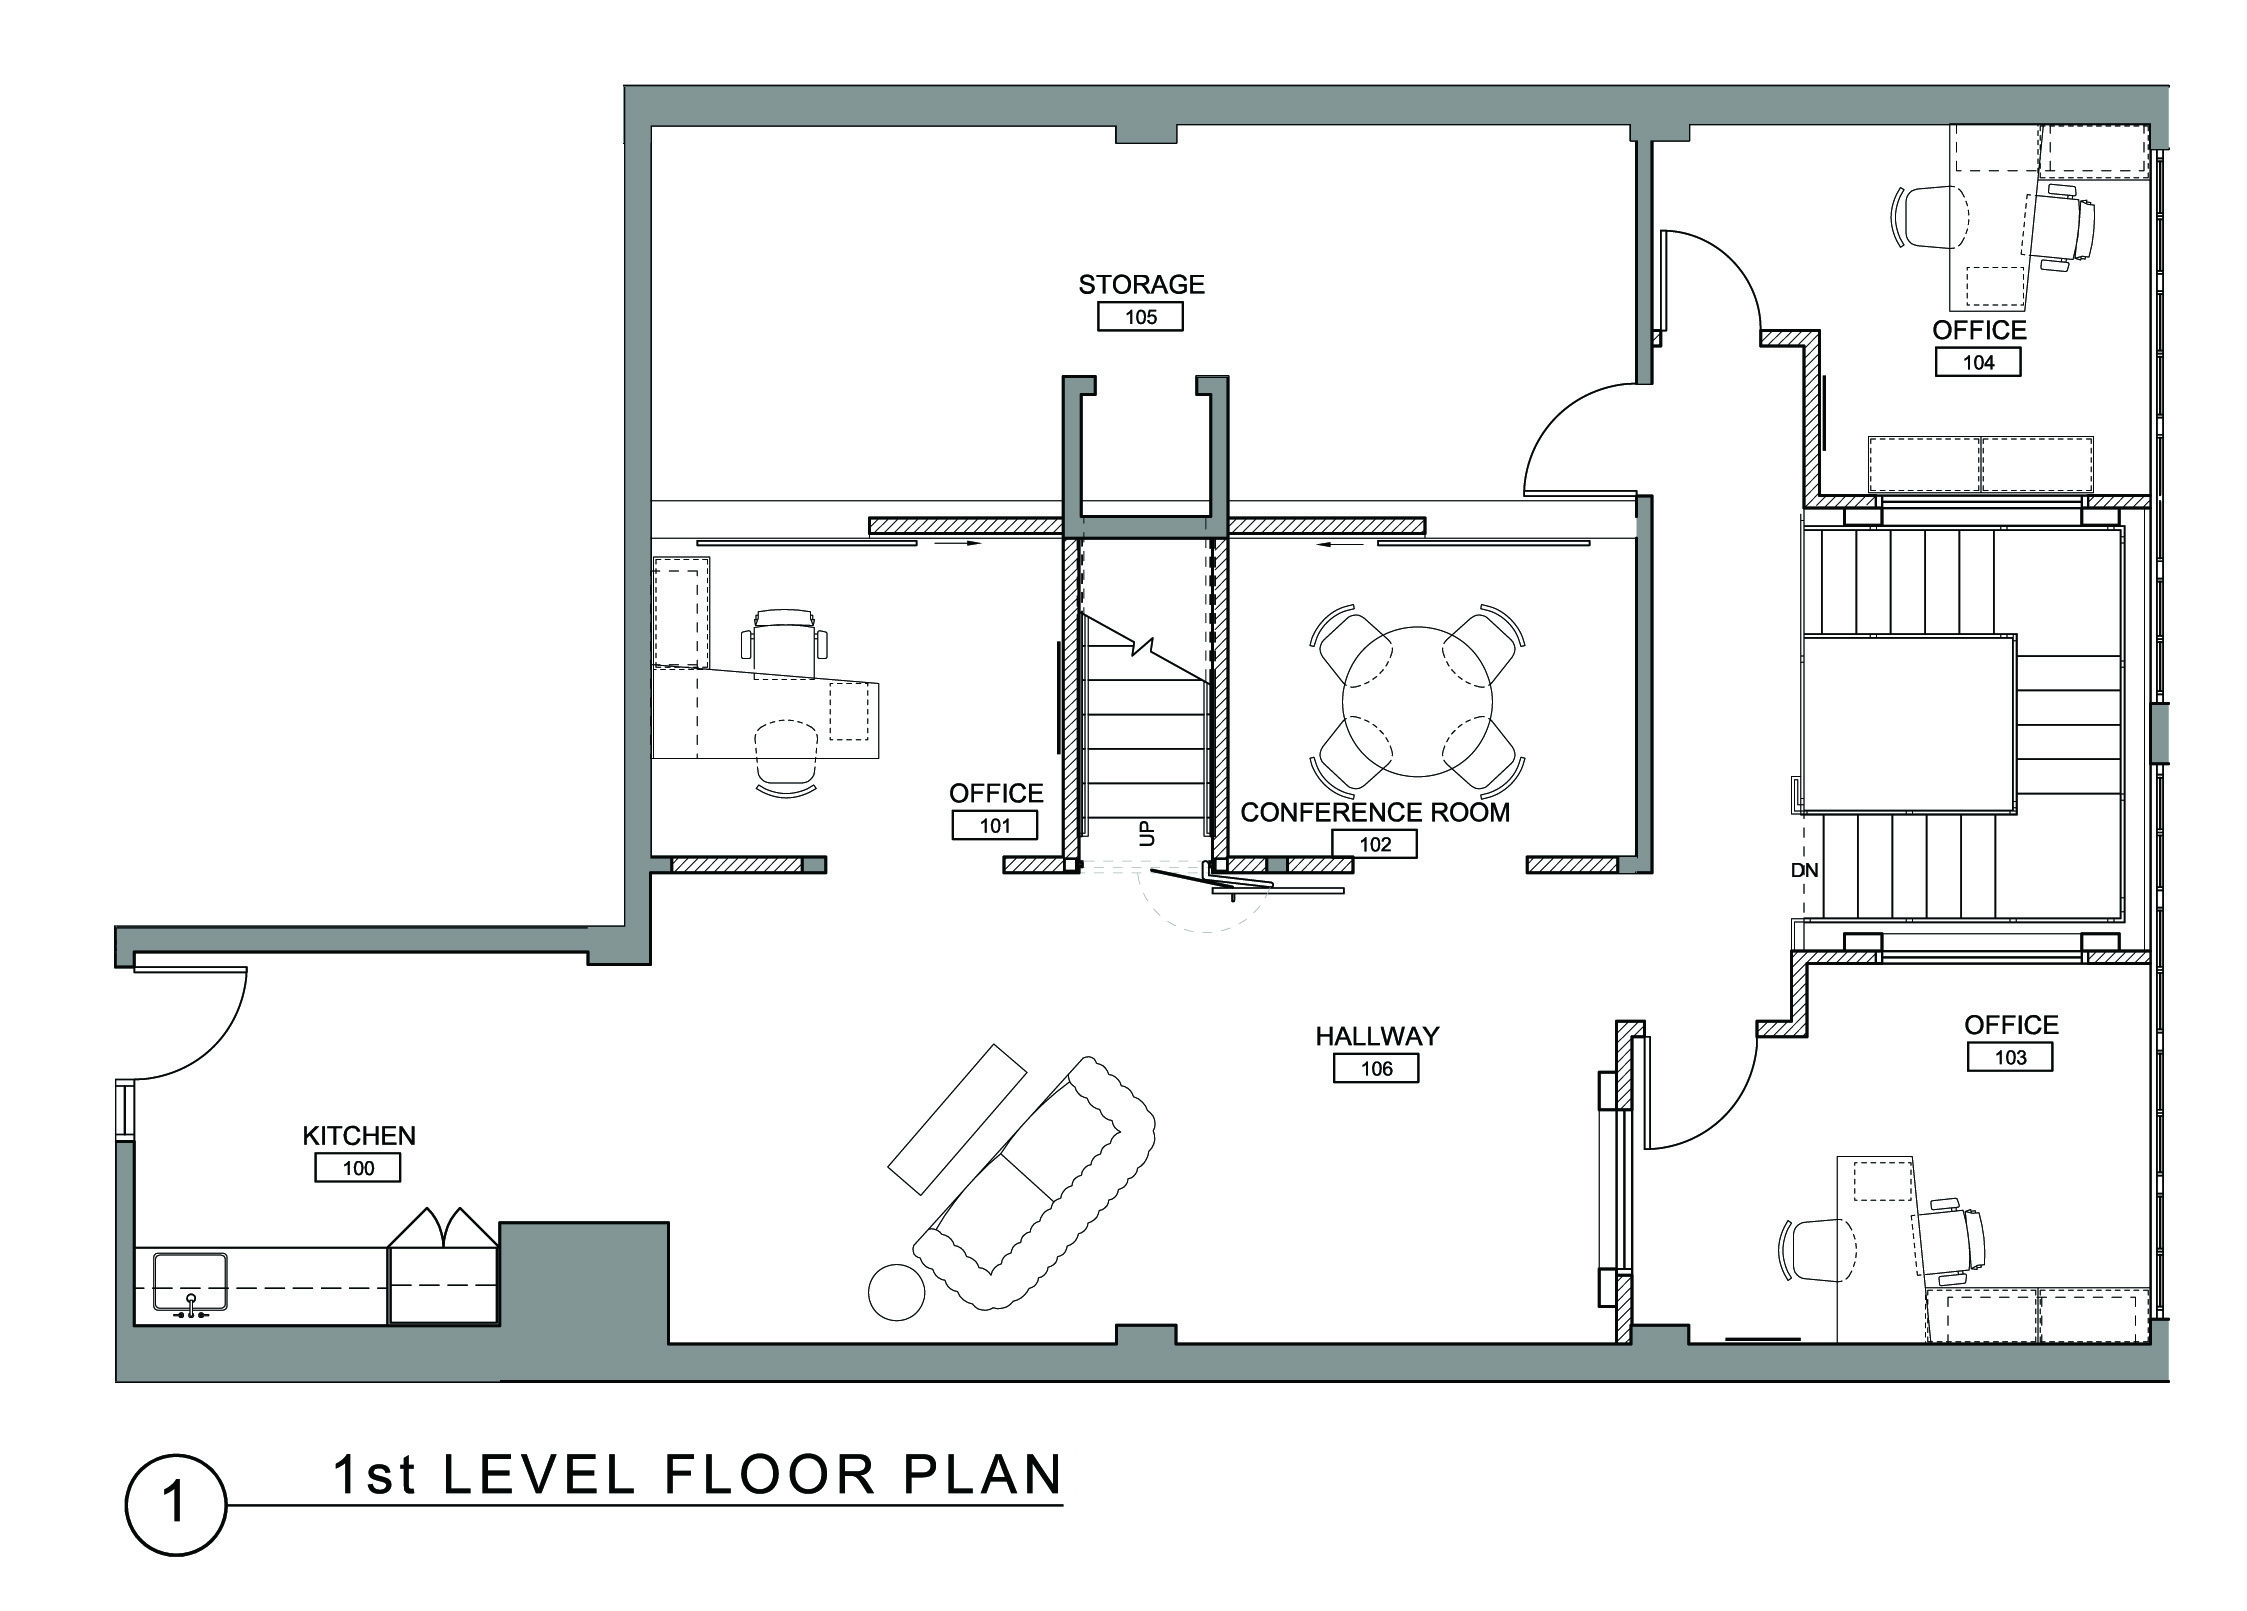 Slap 1st Level Floor Plan only.jpg